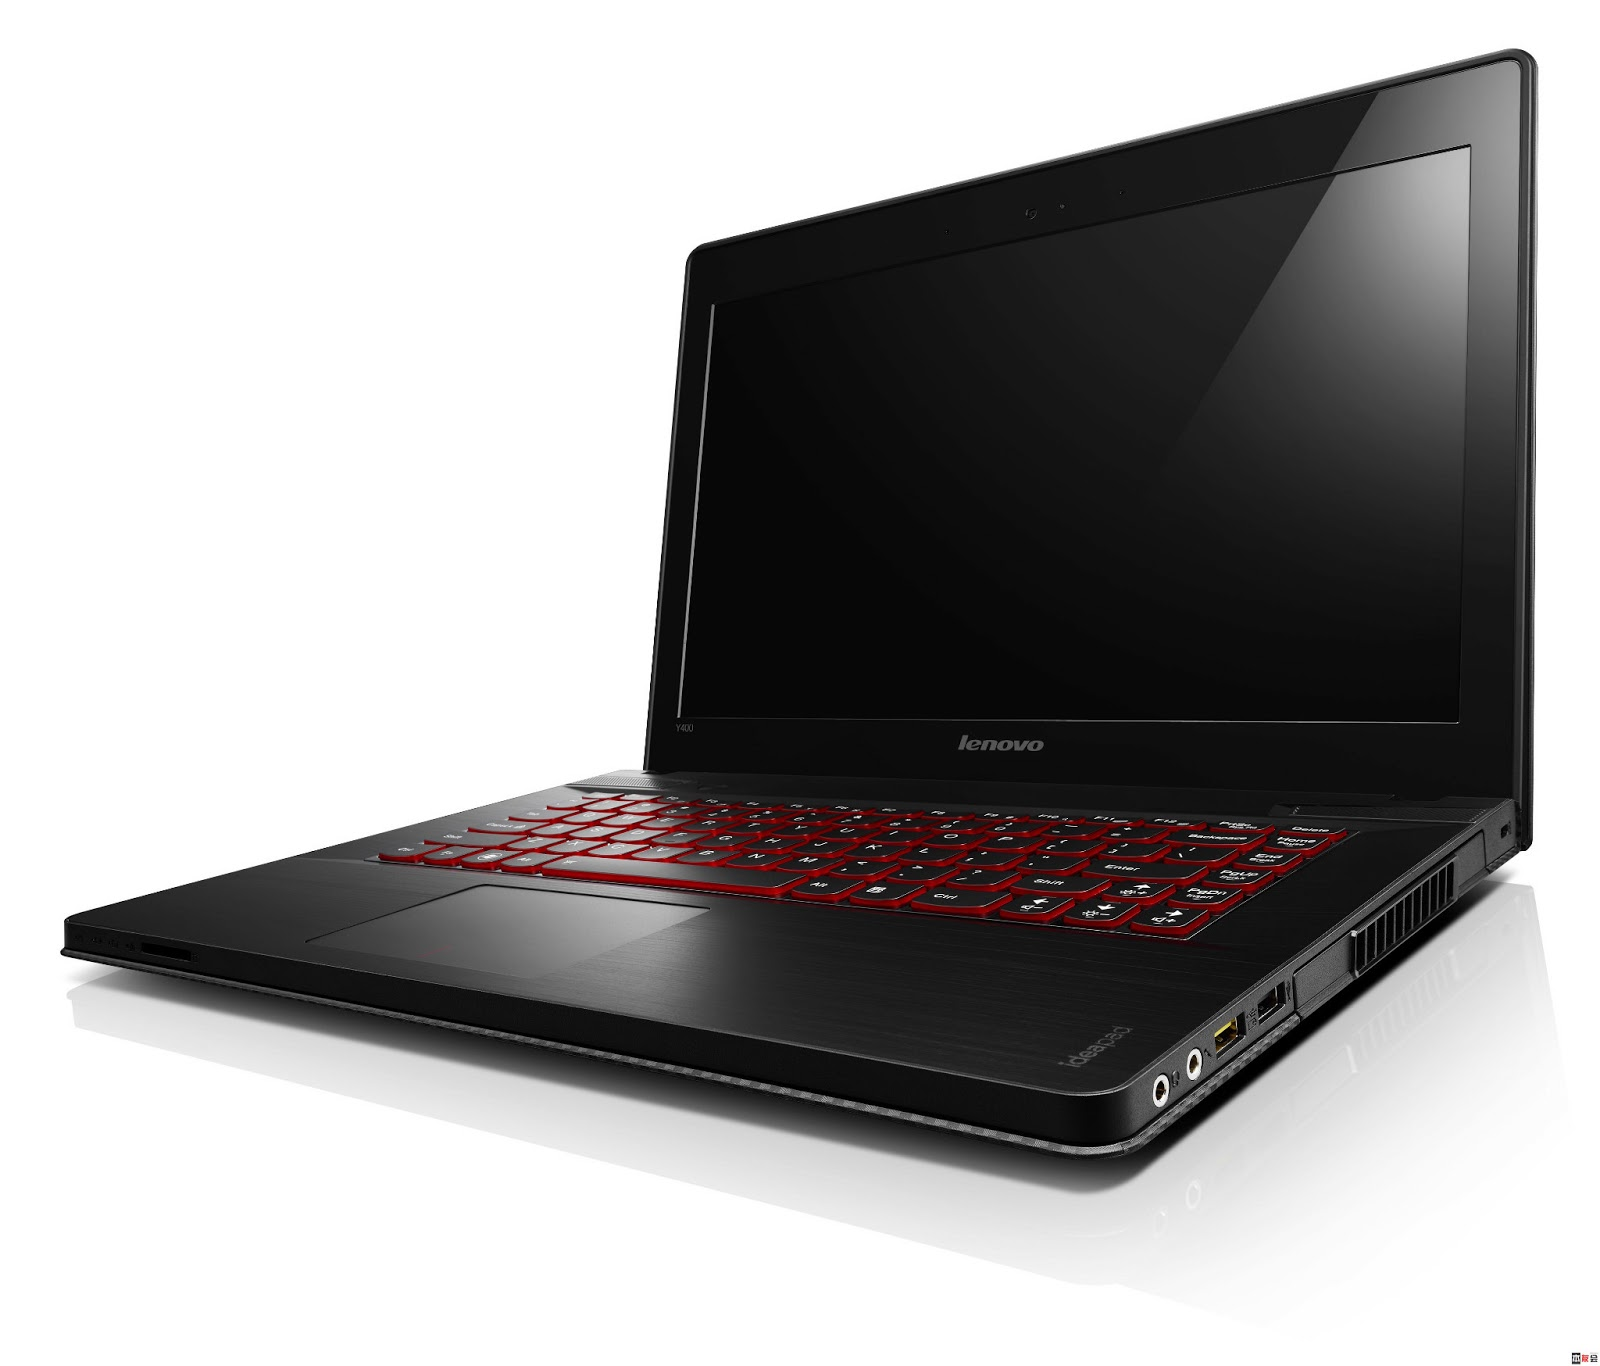 Best Deals Lenovo Ideapad Y410p Multimedia Laptop